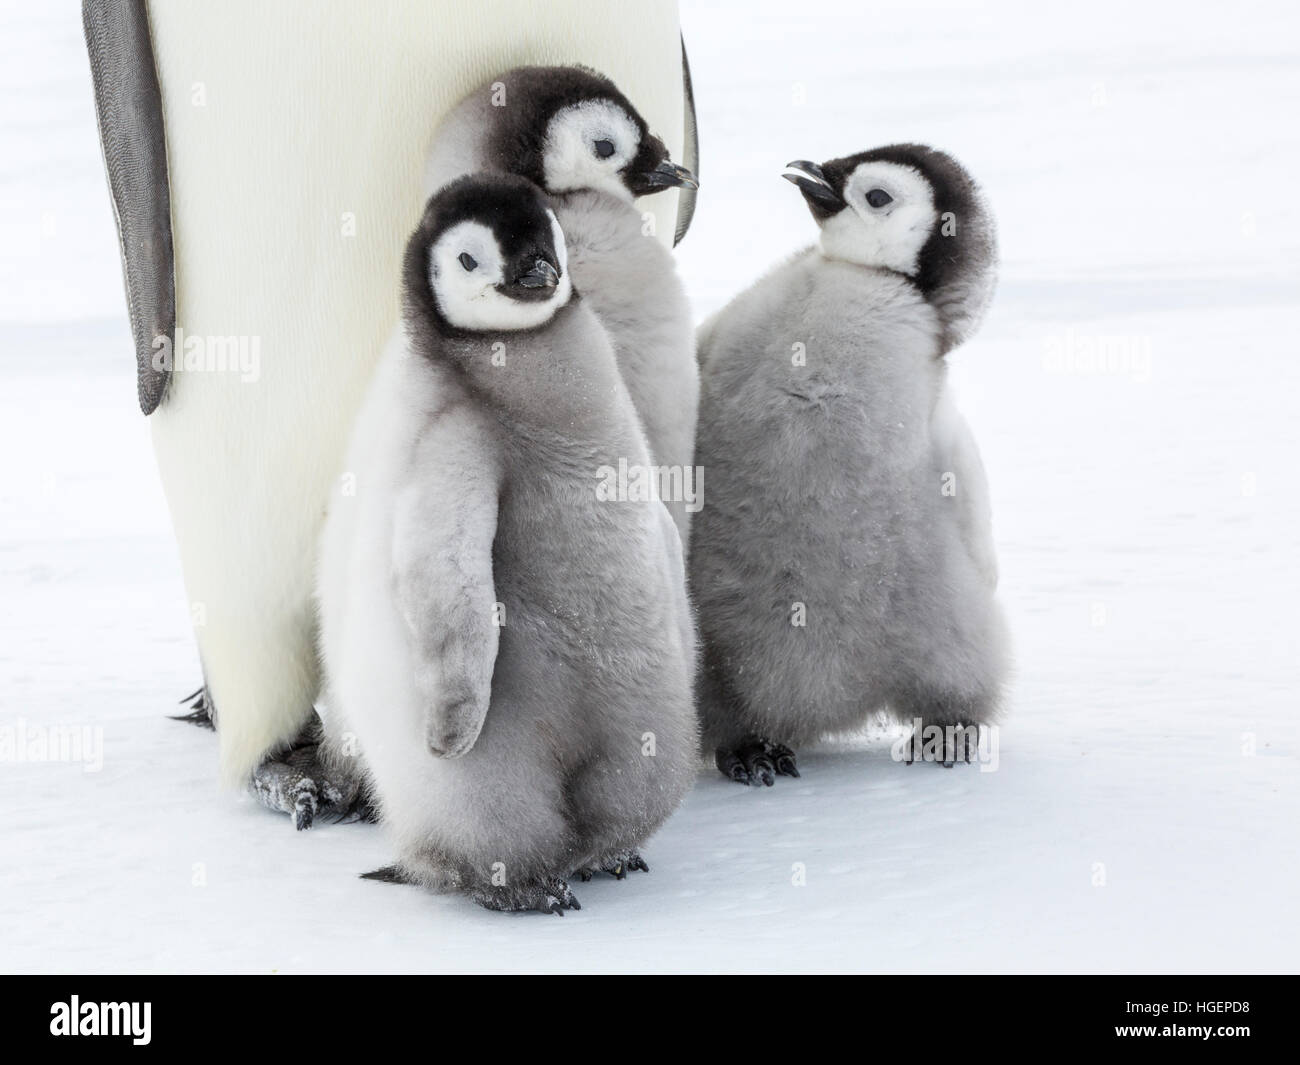 Three Emperor Penguin chicks with two interacting - Stock Image